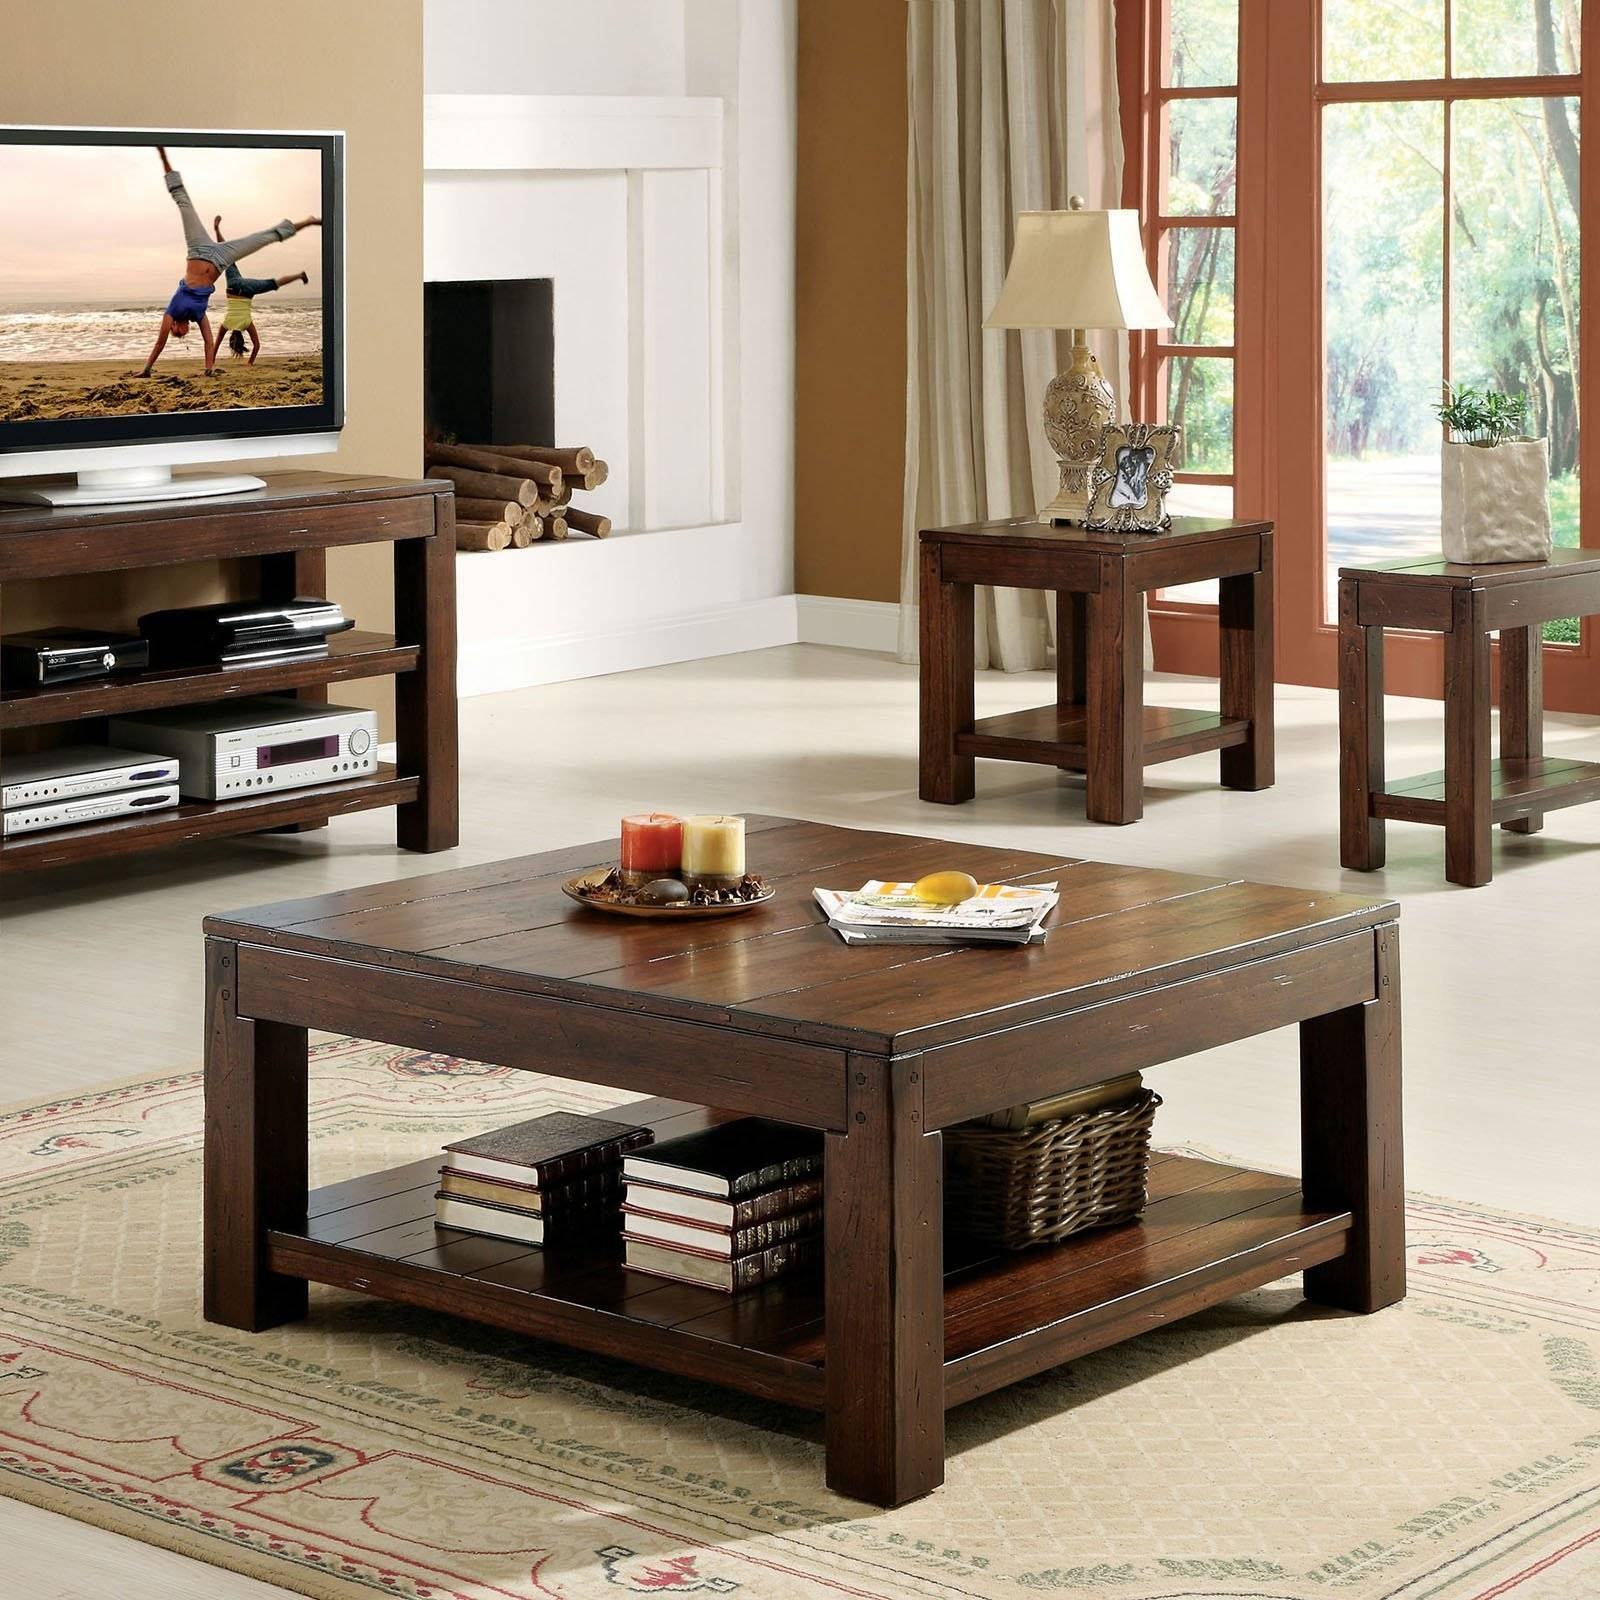 2017 Popular Coffee Tables and Tv Stands